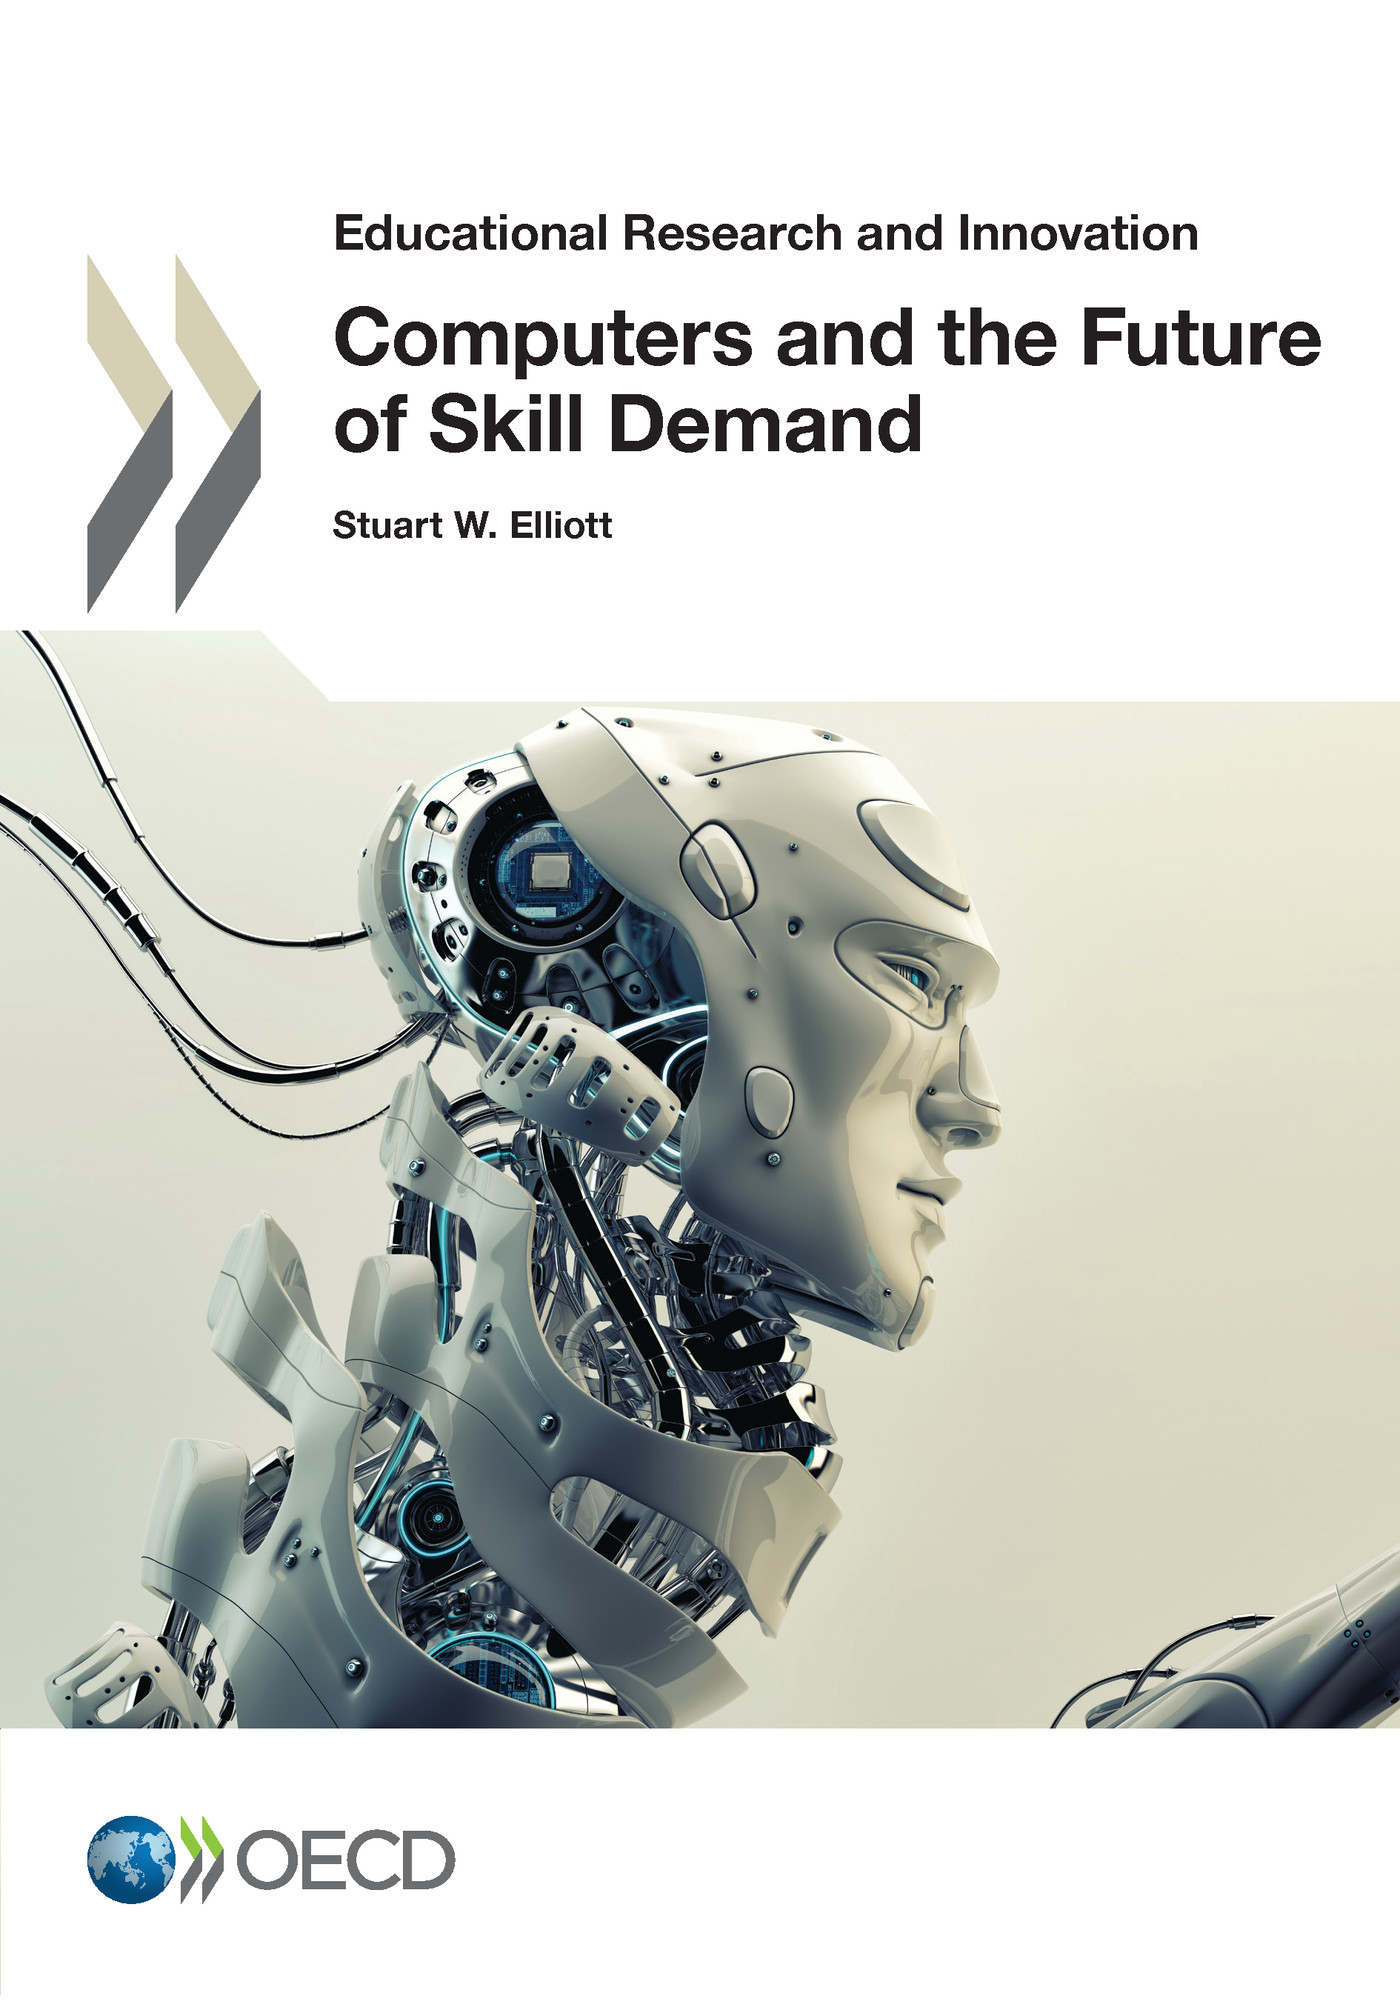 Computers and the Future of Skill Demand De  Collectif - OCDE / OECD